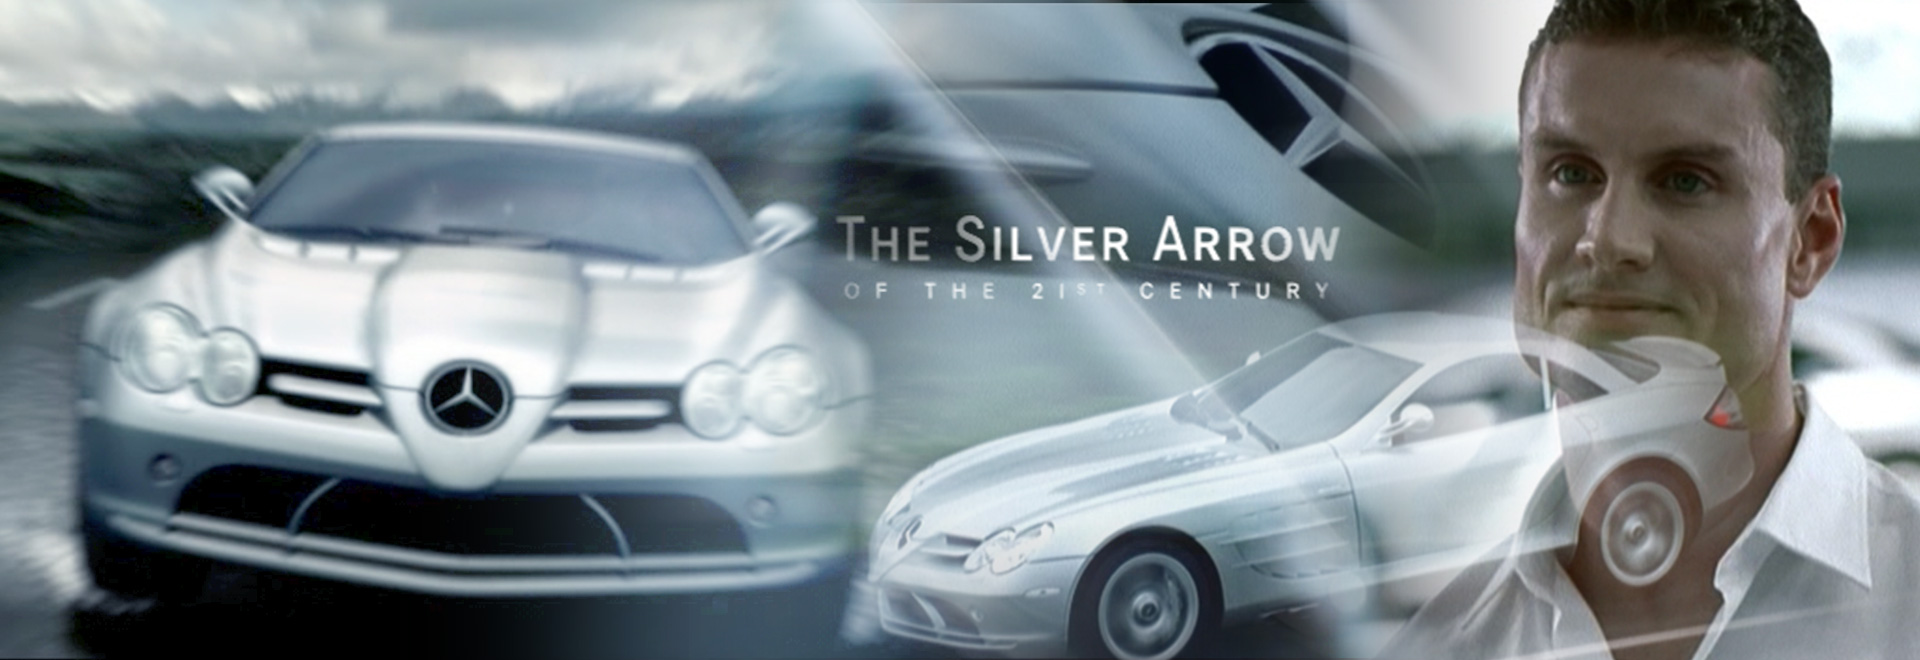 js-filmproduction-postproduction-imagefilm-slr-mclaren-header